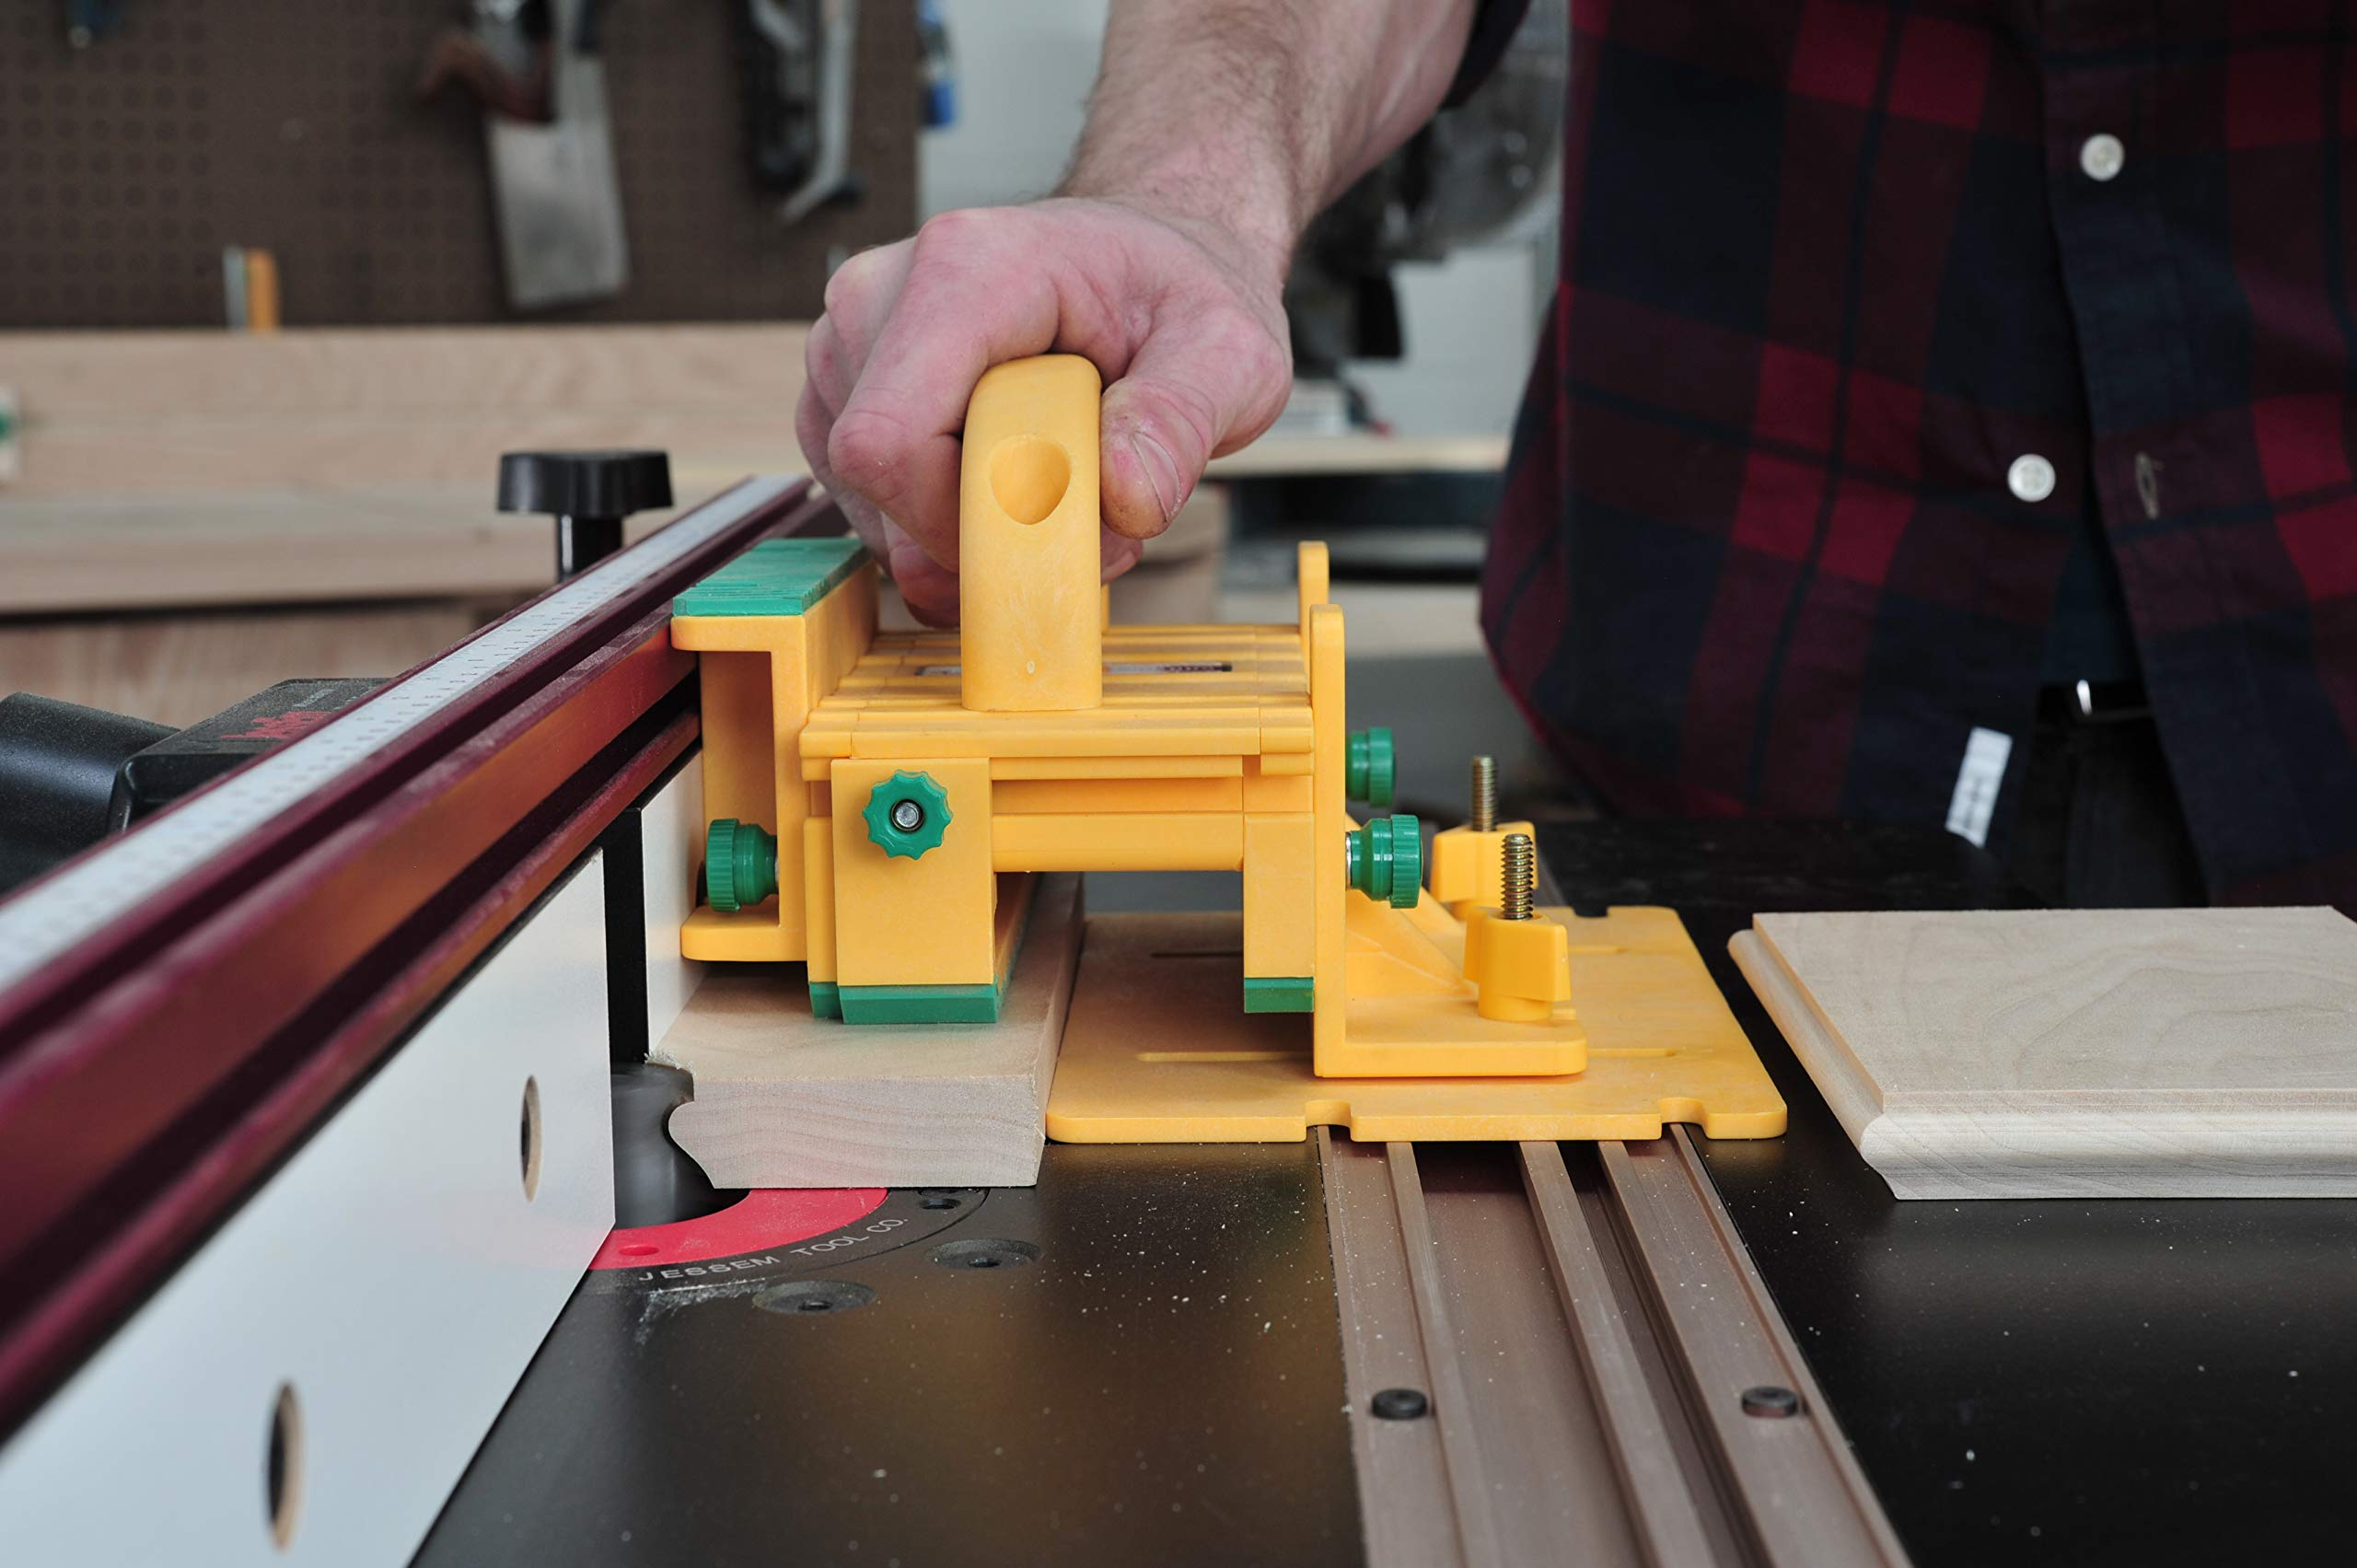 GRR-RIPPER Advanced 3D Pushblock for Table Saw, Router Table, Jointer, and Band Saw by MICROJIG by MICRO JIG